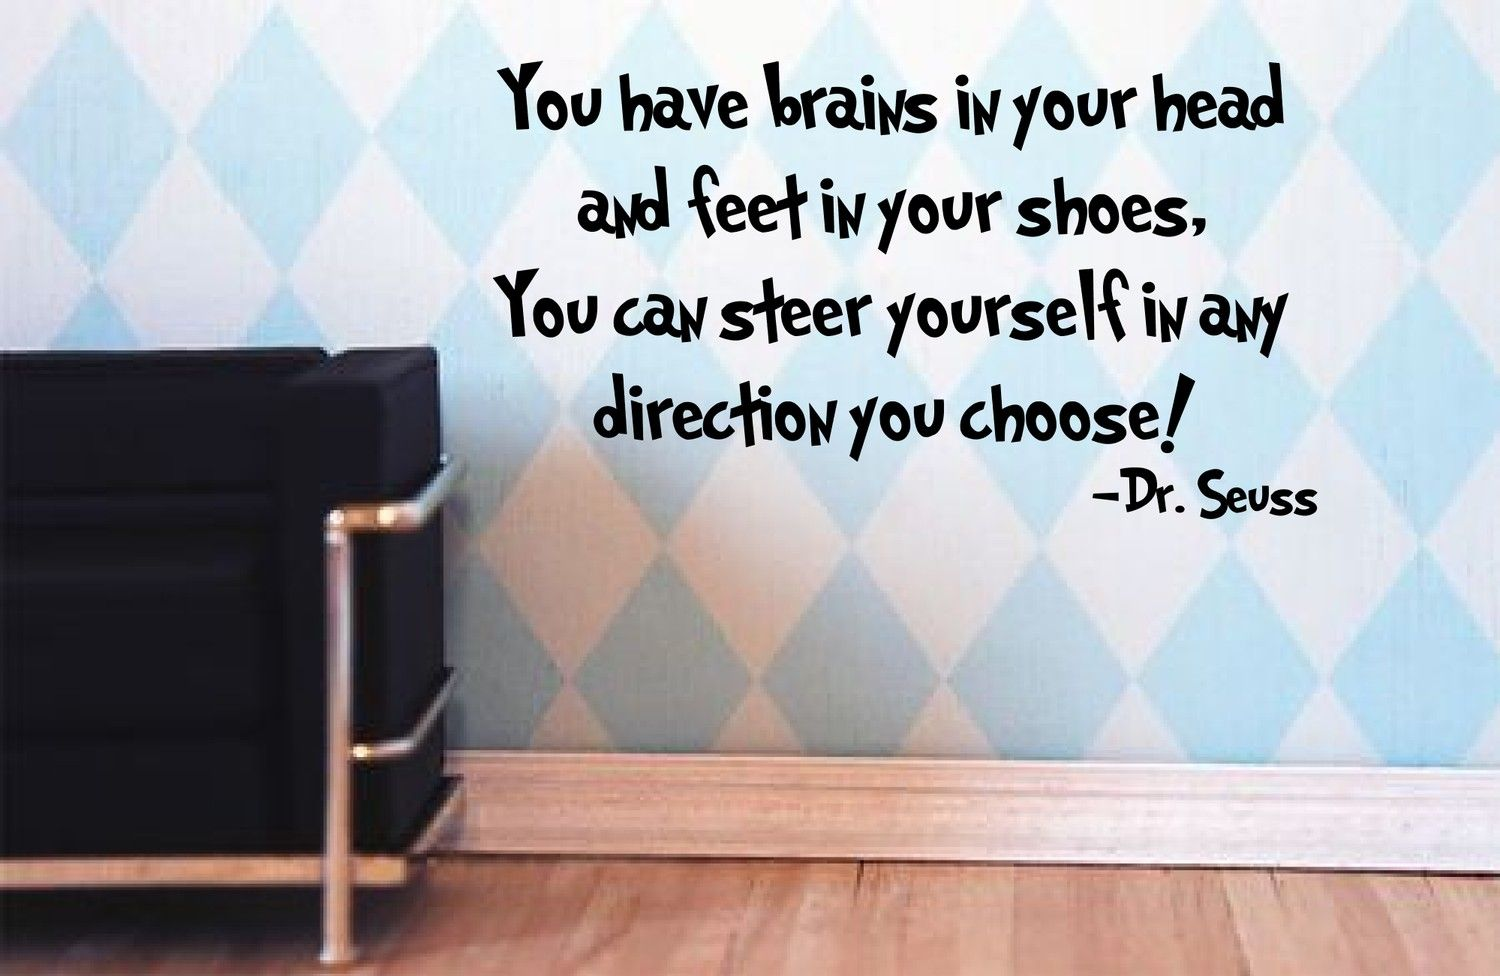 In Your Head Quotes: Dr Seuss Wall Decal 'You Have Brains In Your Head